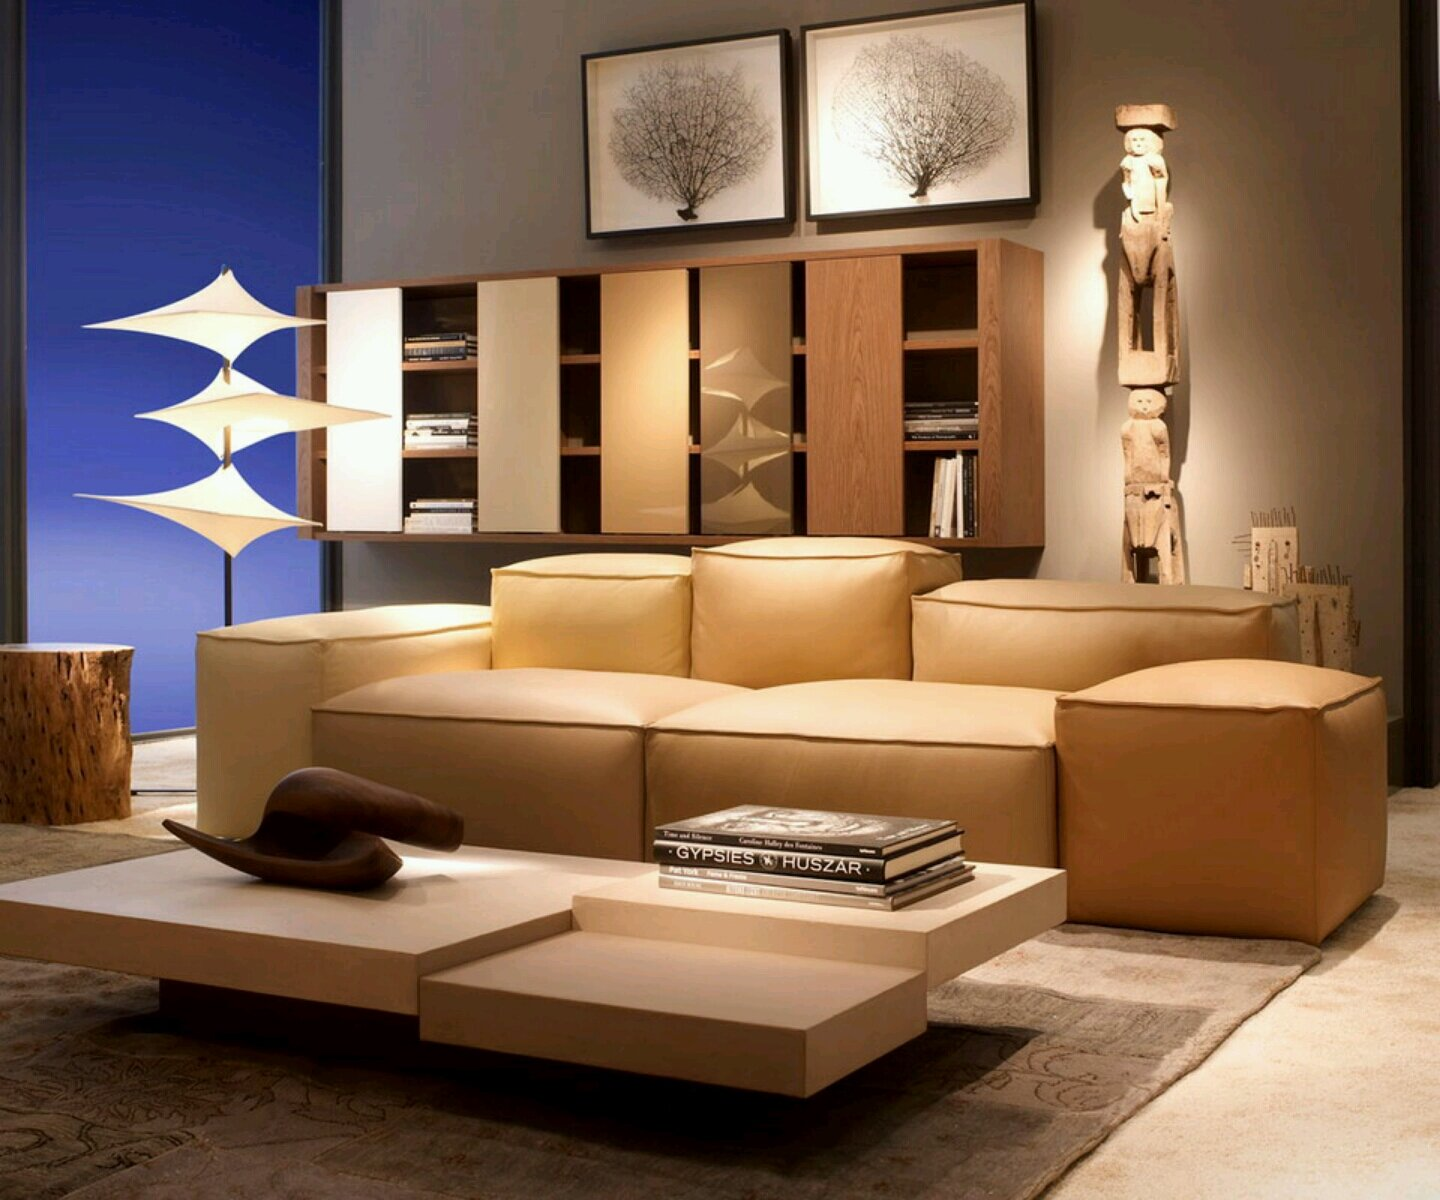 15 really beautiful sofa designs and ideas for Modern home design furniture